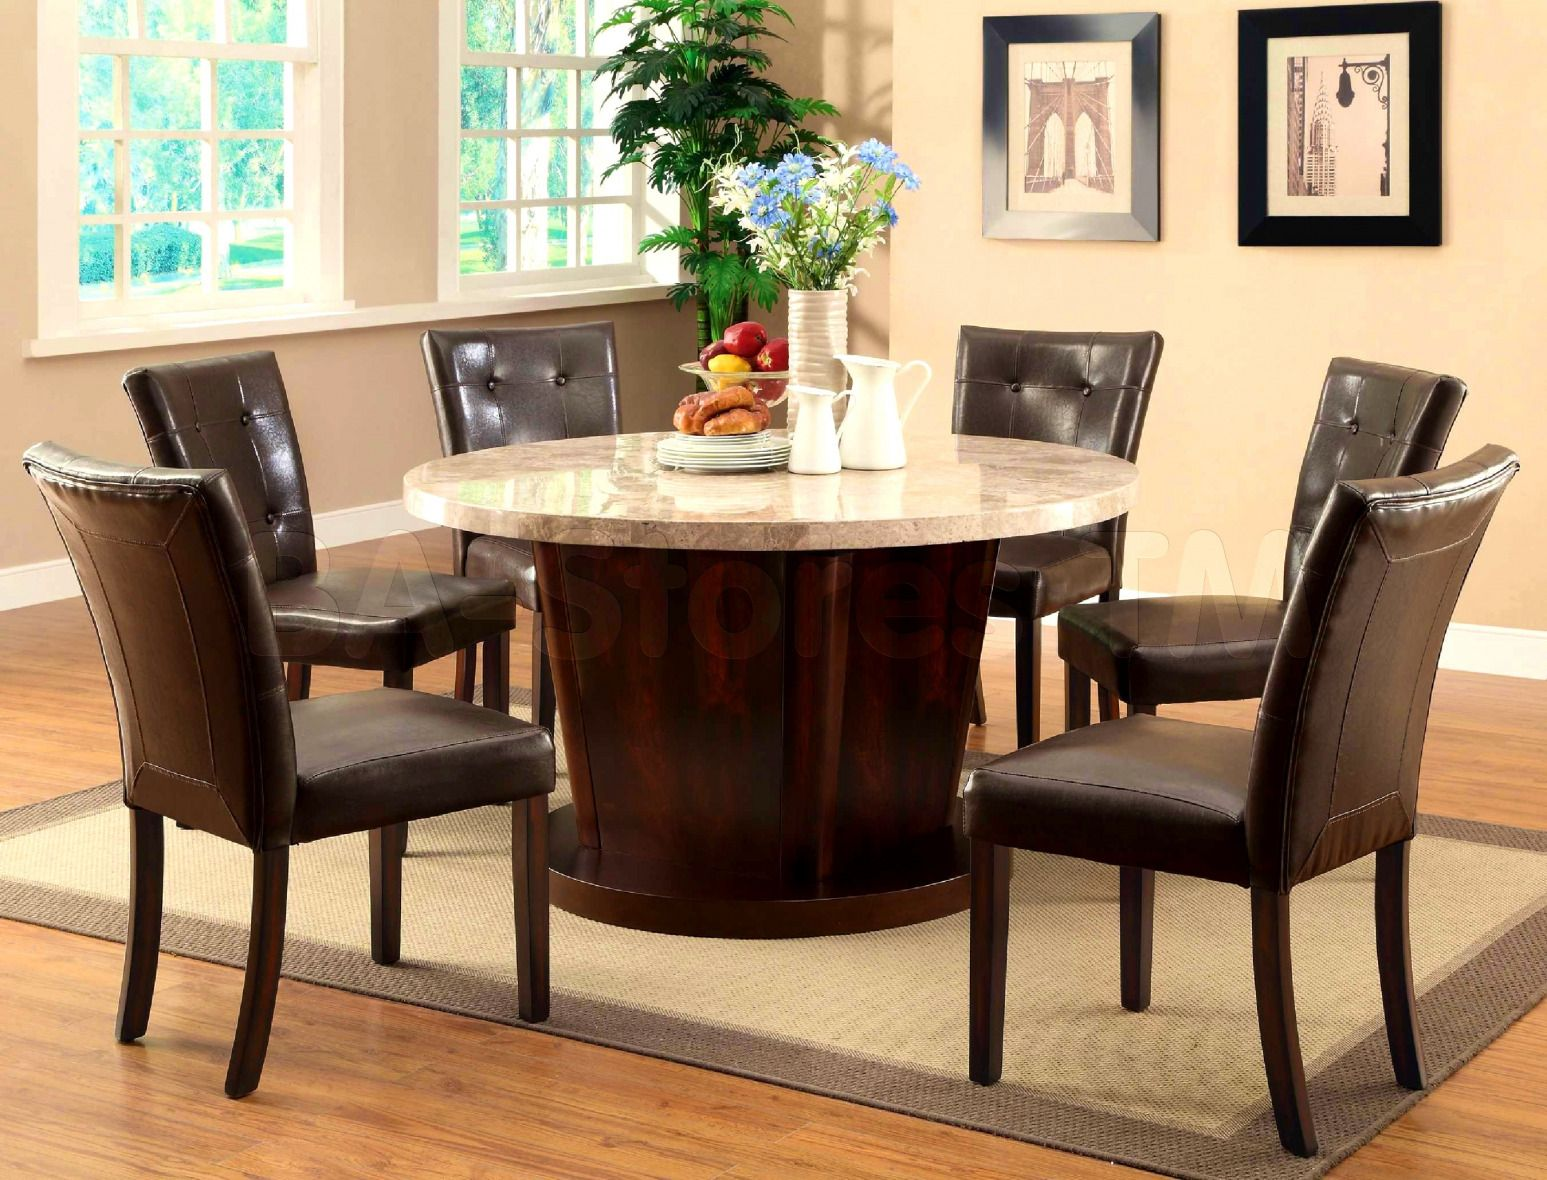 100 round marble dining table for 6  best way to paint